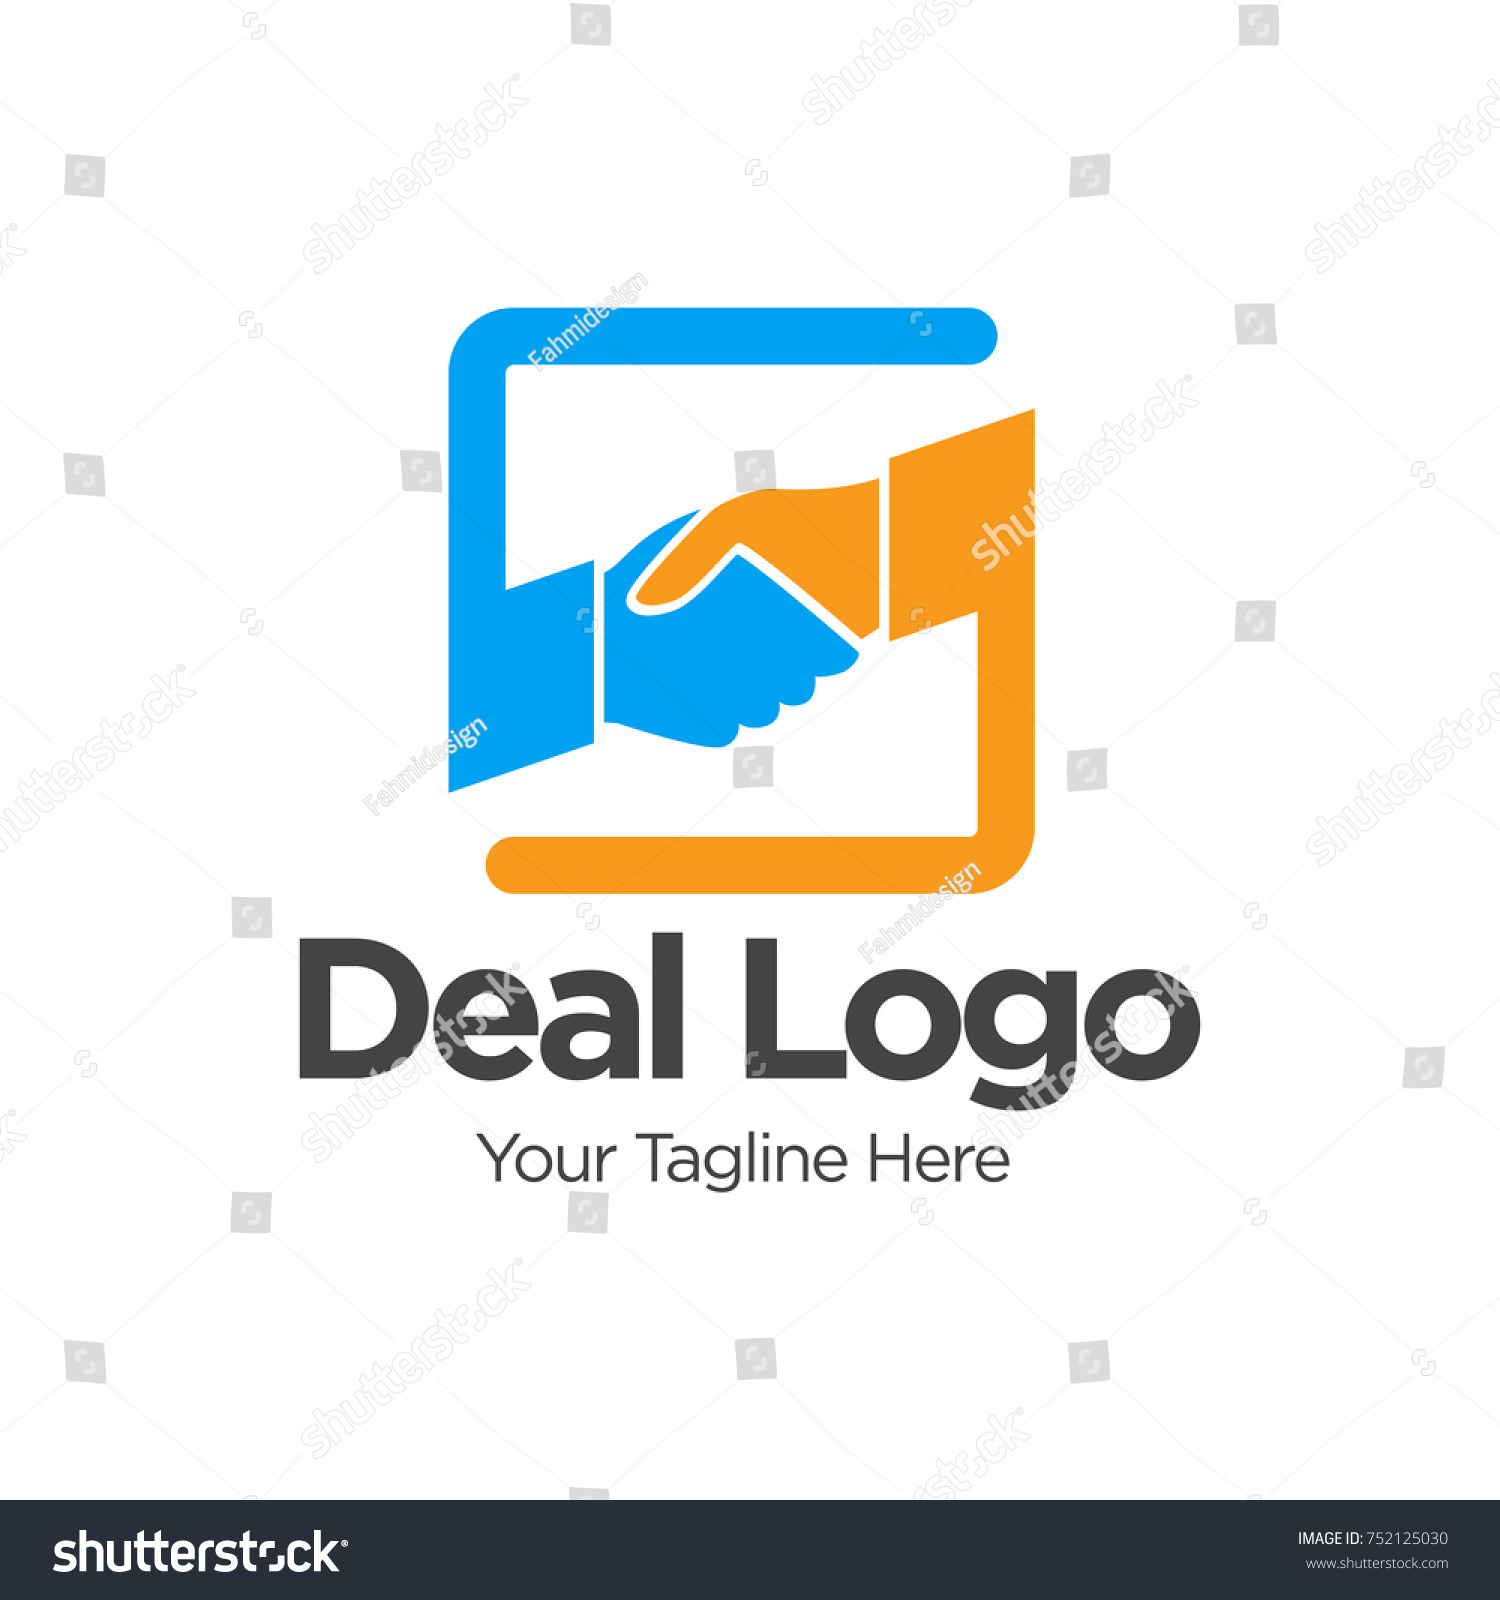 Deal Job Logo Template Design Logo Stock-Vektorgrafik 752125030 ...